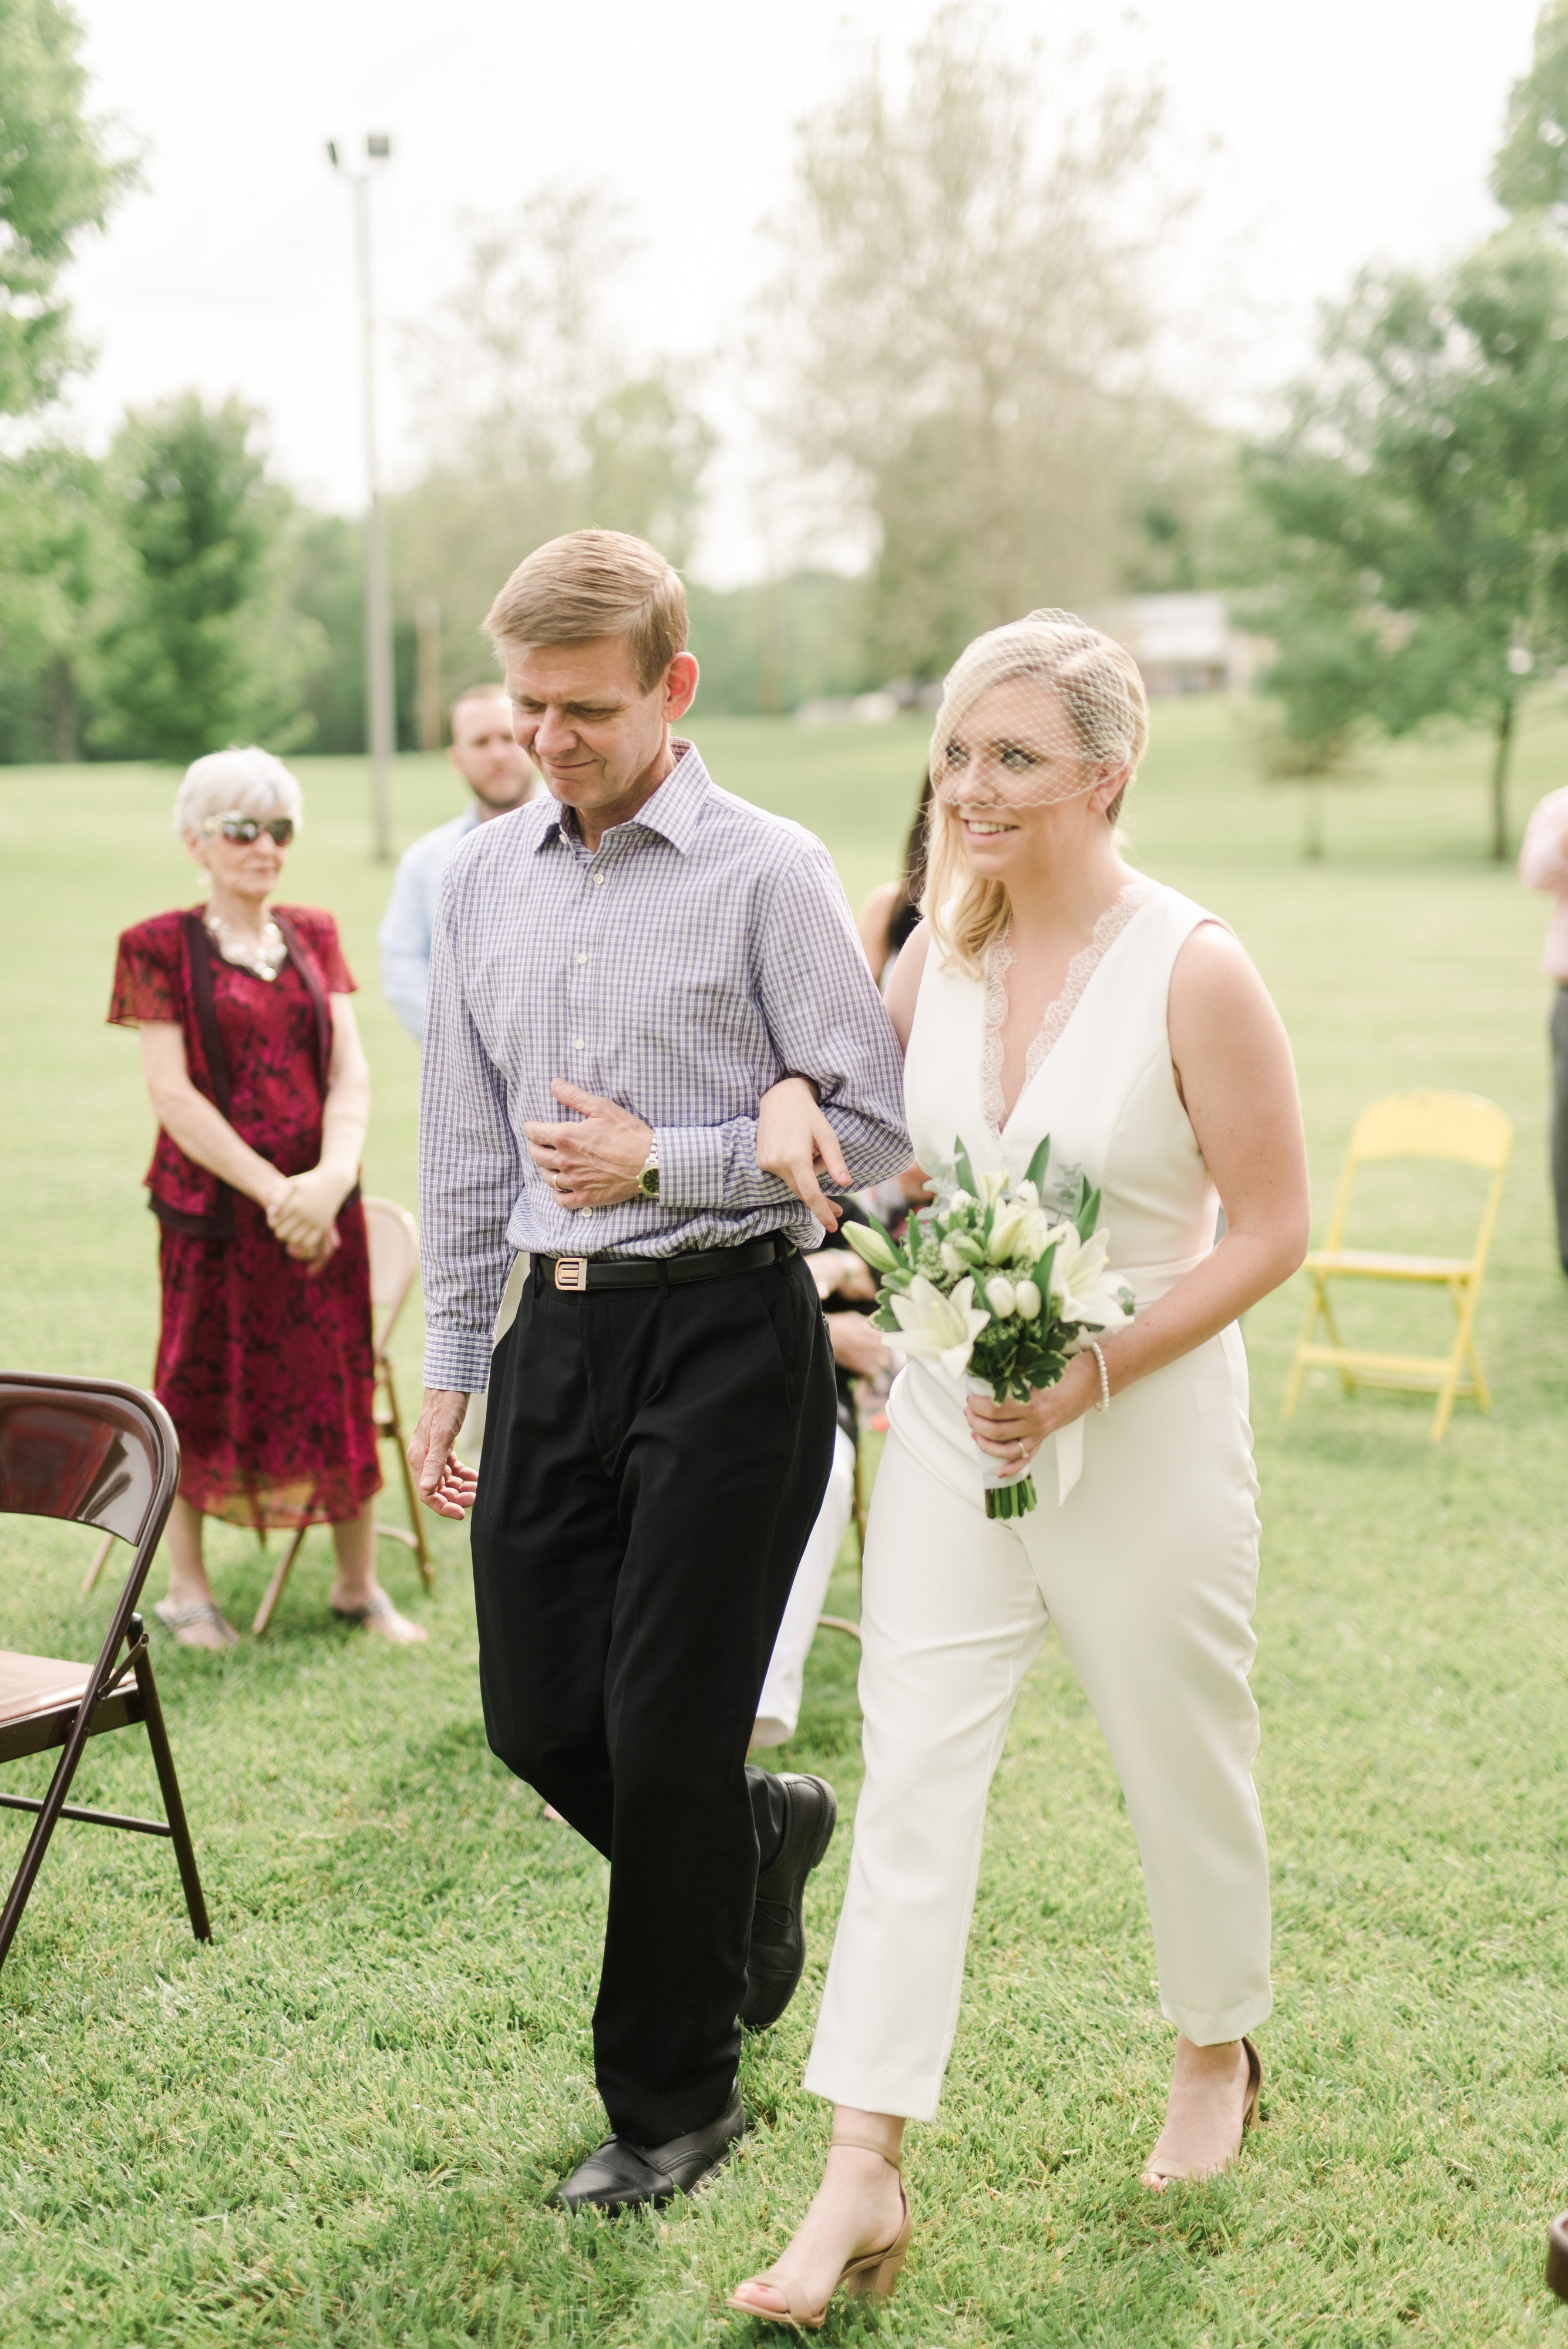 Why You Should Have a Coordinator on Wedding Day